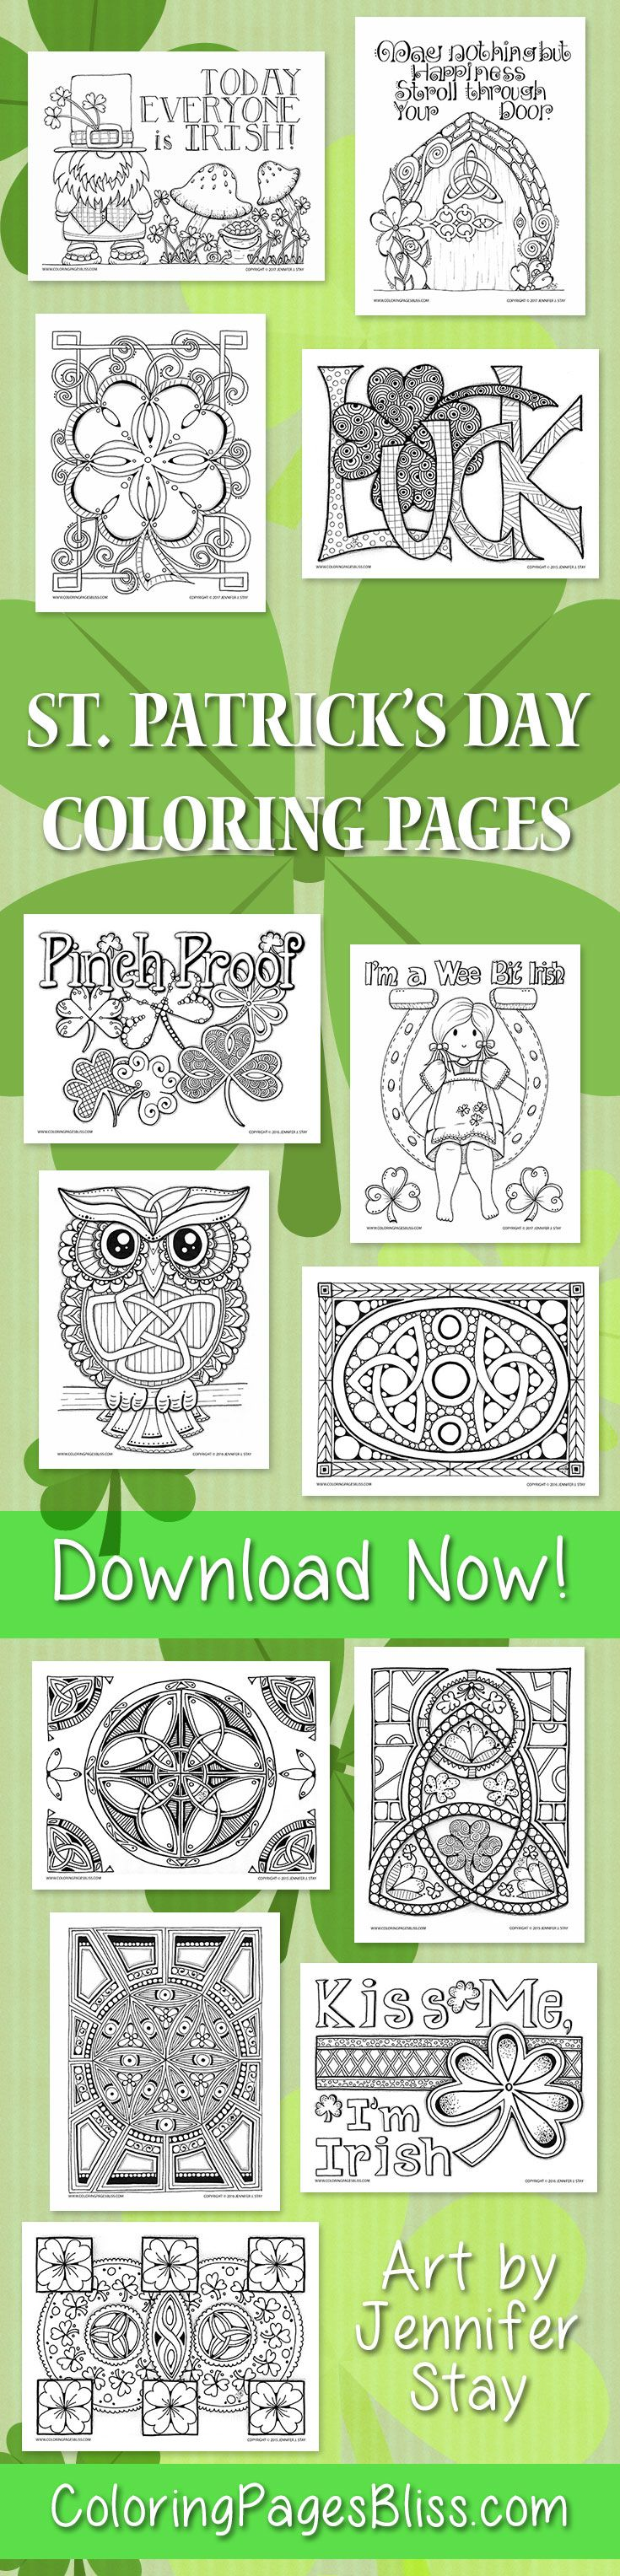 Coloring pages bliss